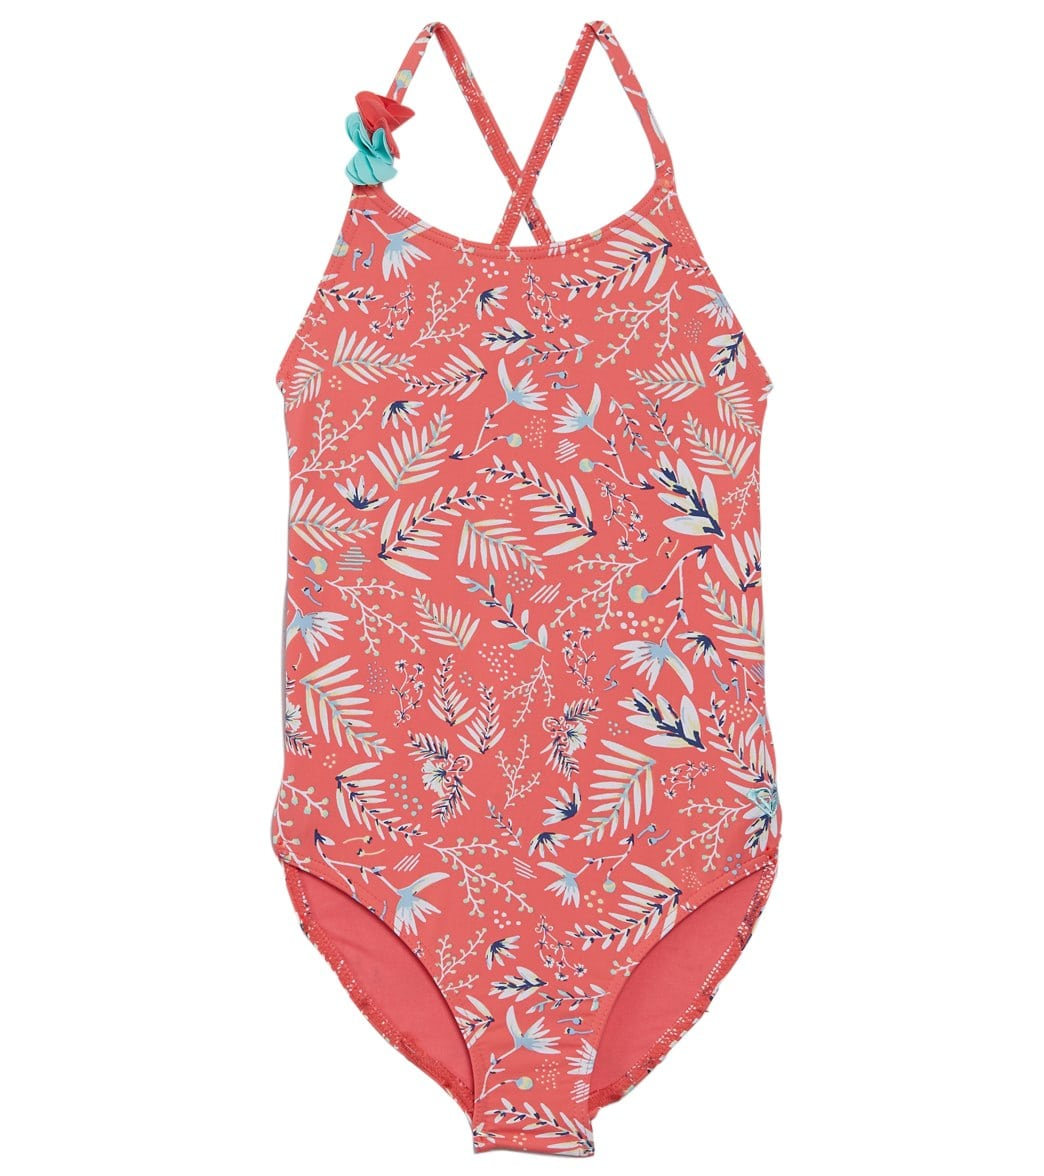 2846139032a57 Roxy Girls' Bali Dance One Piece Swimsuit (Toddler, Little Kid) at  SwimOutlet.com